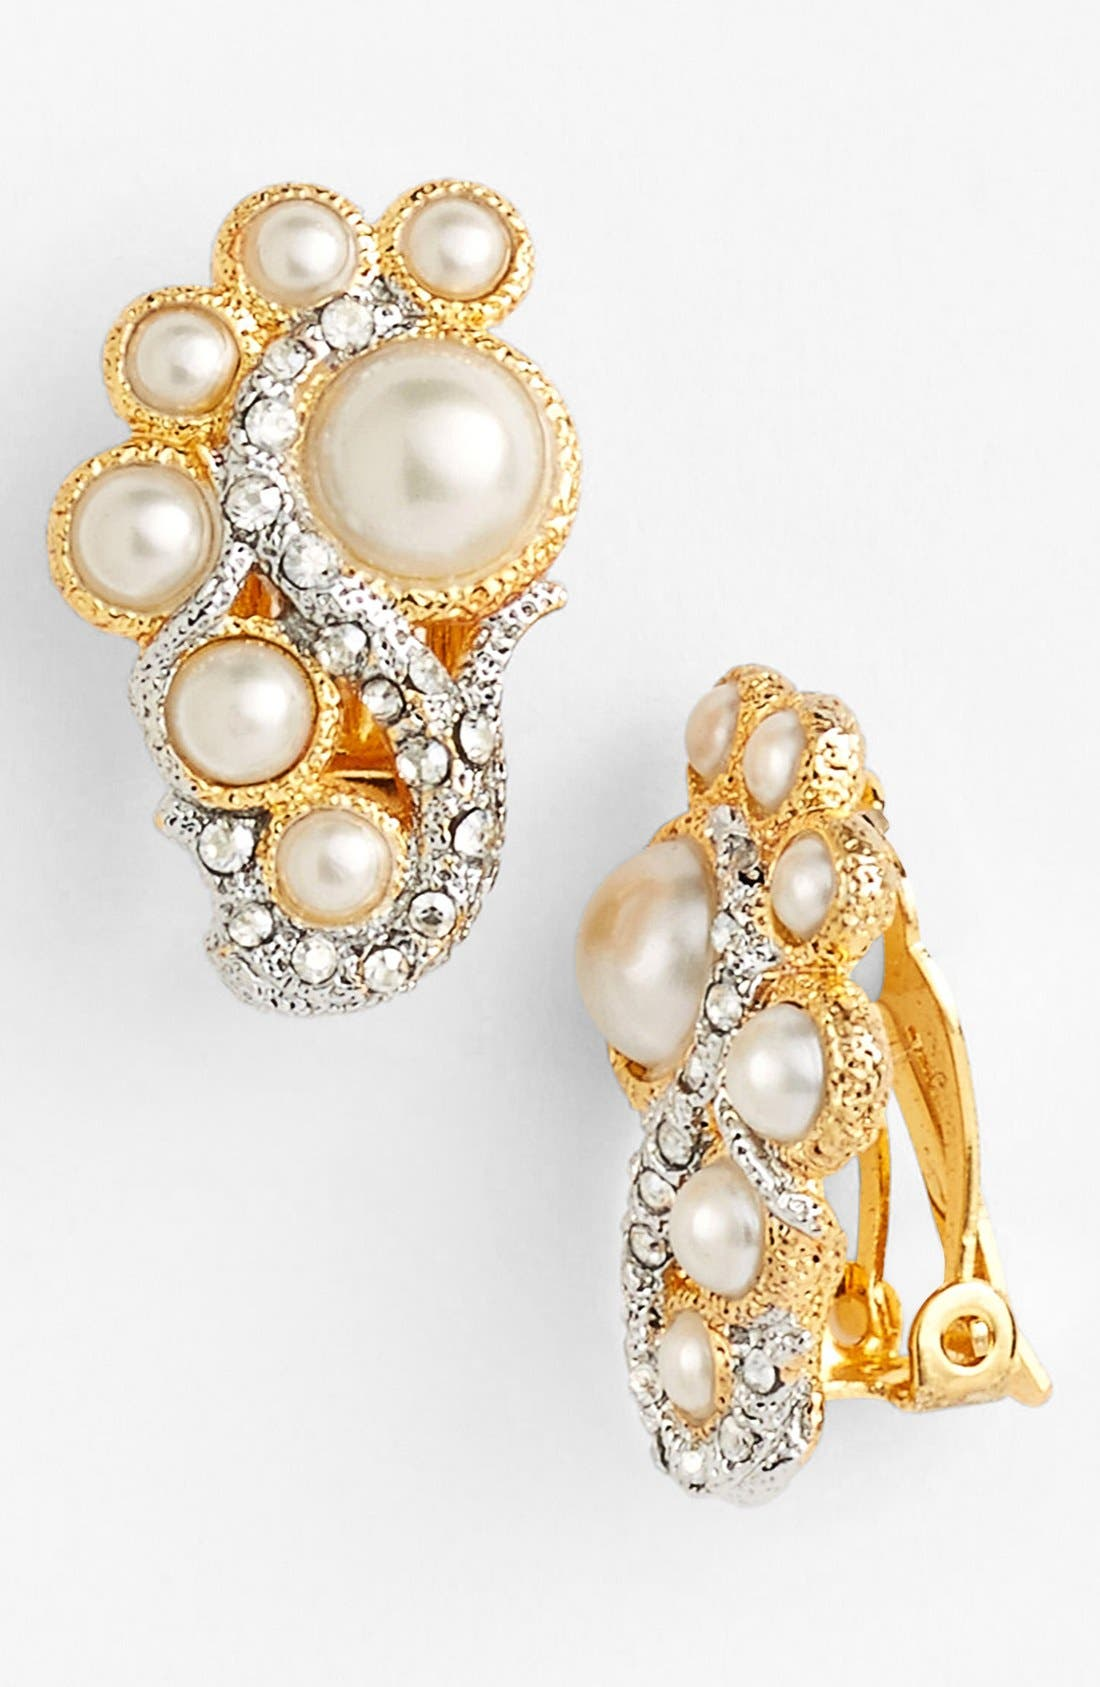 Alternate Image 1 Selected - Alexis Bittar 'Elements - Maldivian' Clip Earrings